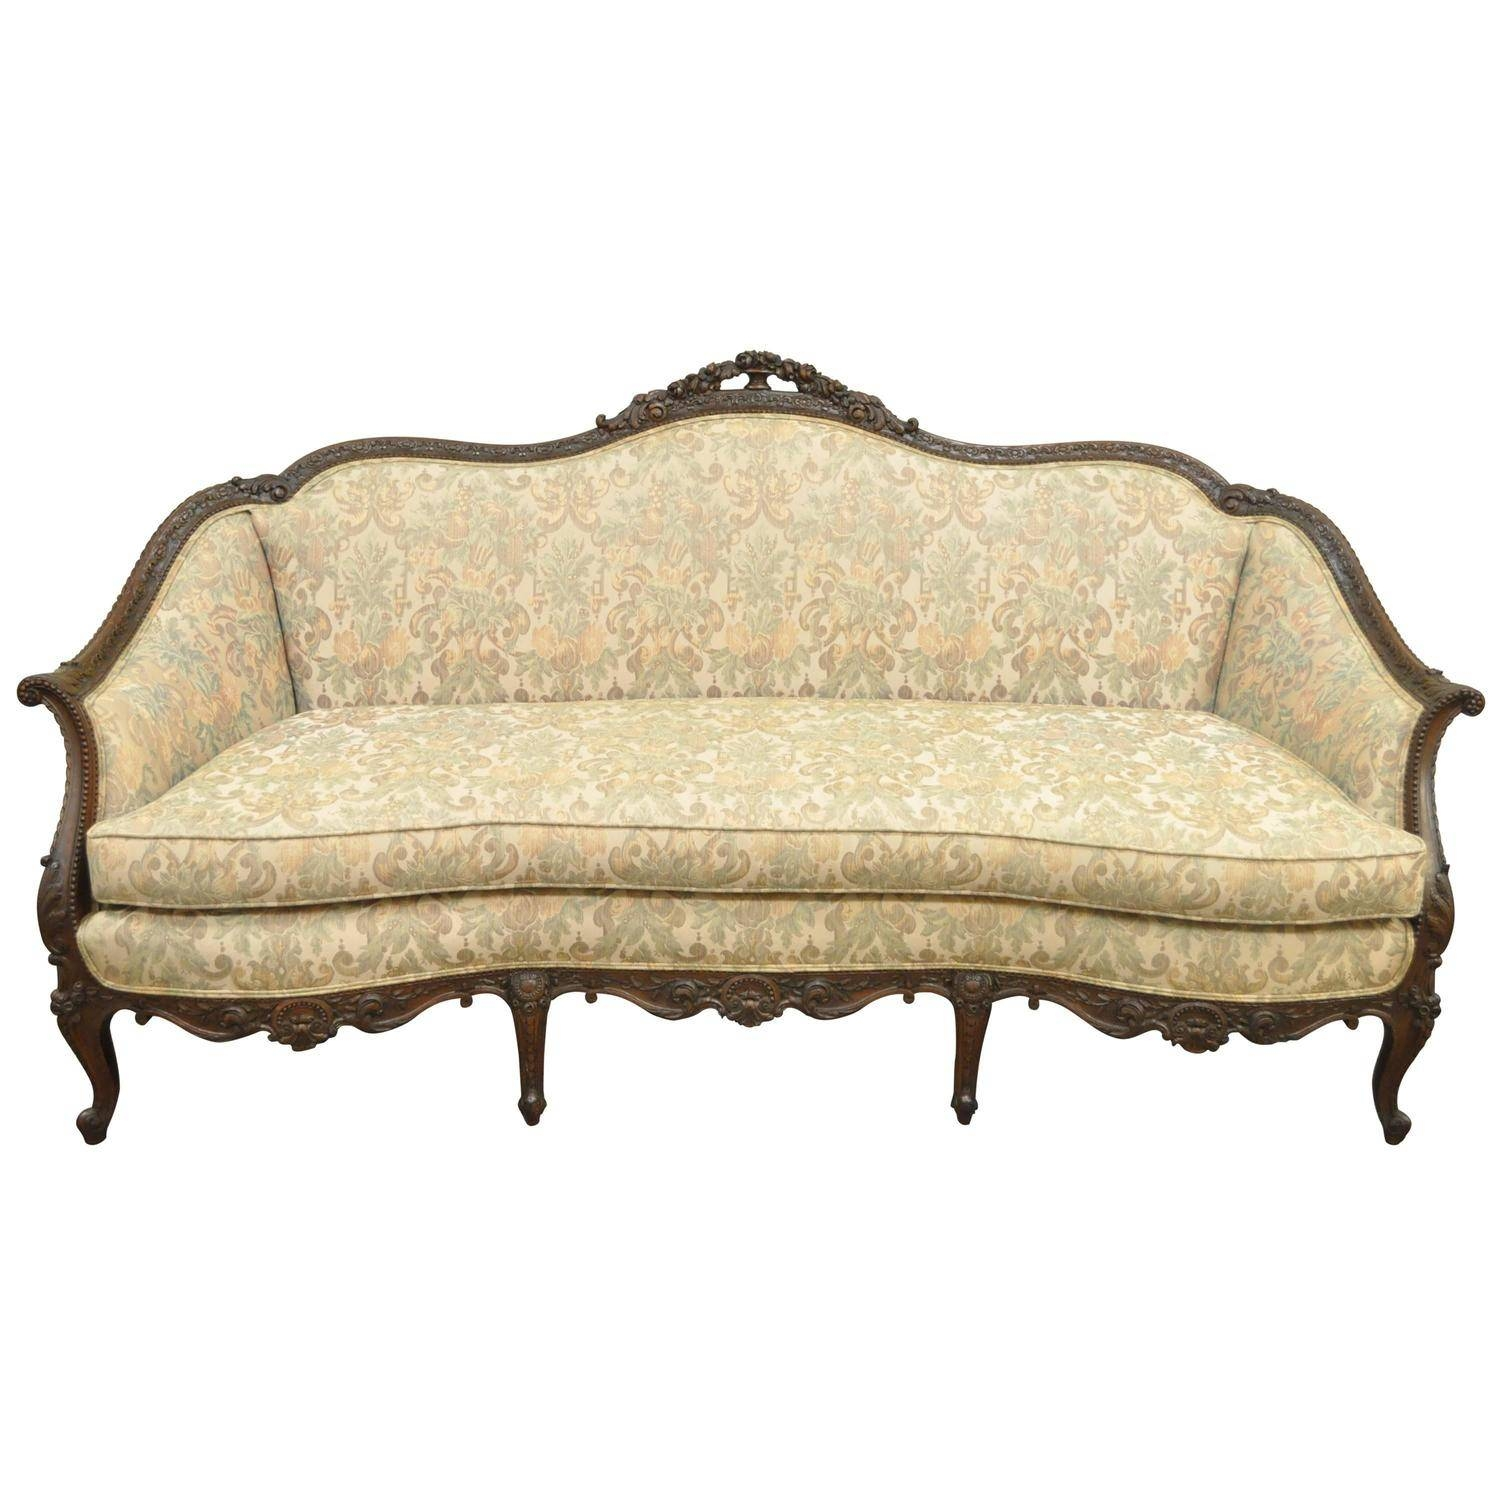 1930S French Louis Xv Hollywood Regency Style Finely Carved pertaining to French Style Sofa (Image 1 of 25)